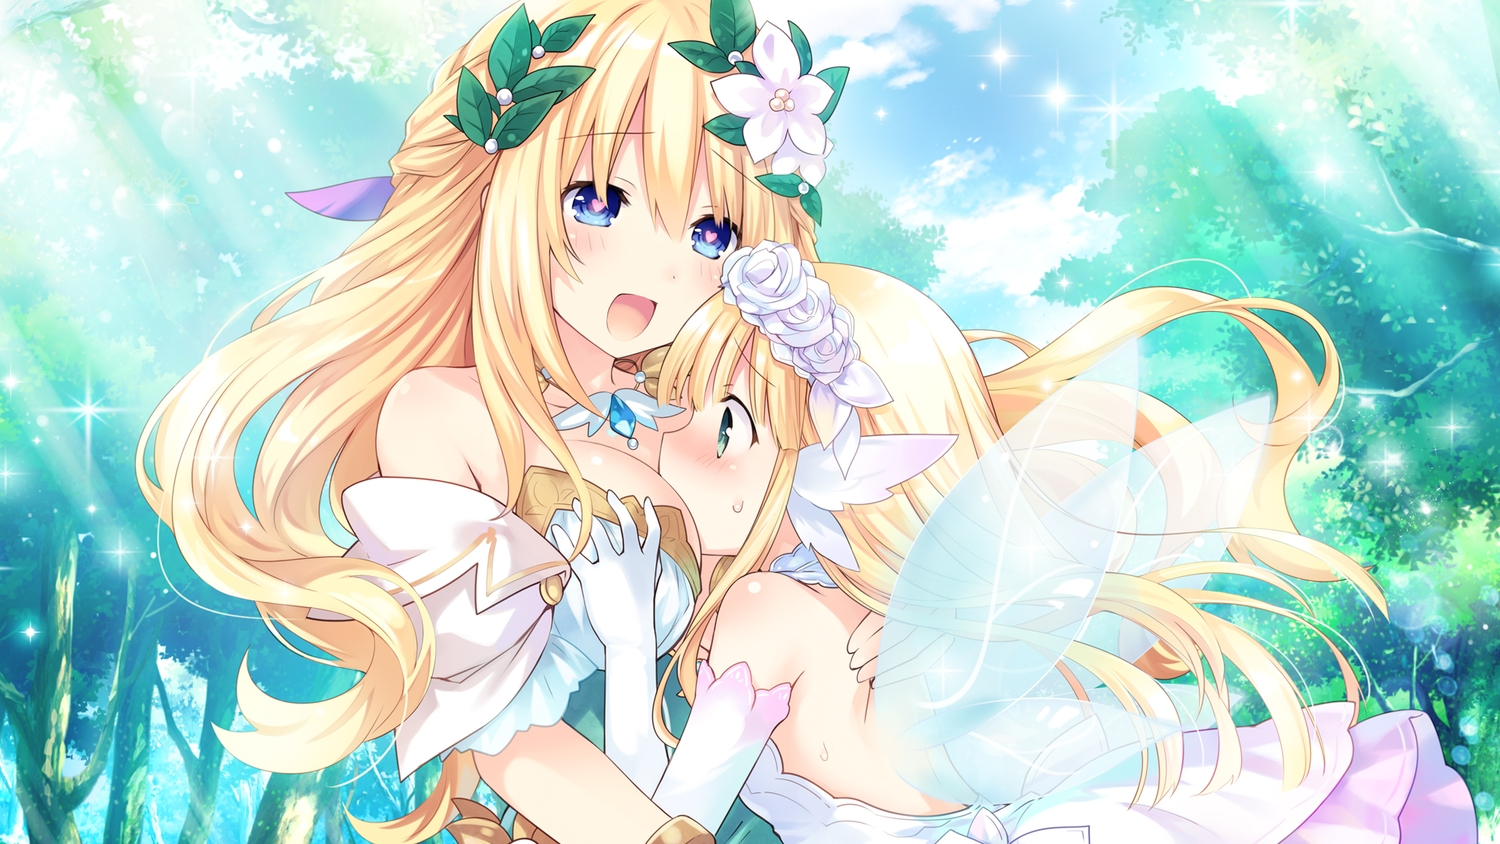 2girls aqua_eyes blonde_hair blush bouquet_(hyperdimension_neptunia) breasts cleavage clouds dress fairy flowers four_goddesses_online:_cyber_dimension_neptune green_eyes hug hyperdimension_neptunia loli long_hair rose sky tree tsunako vert wings